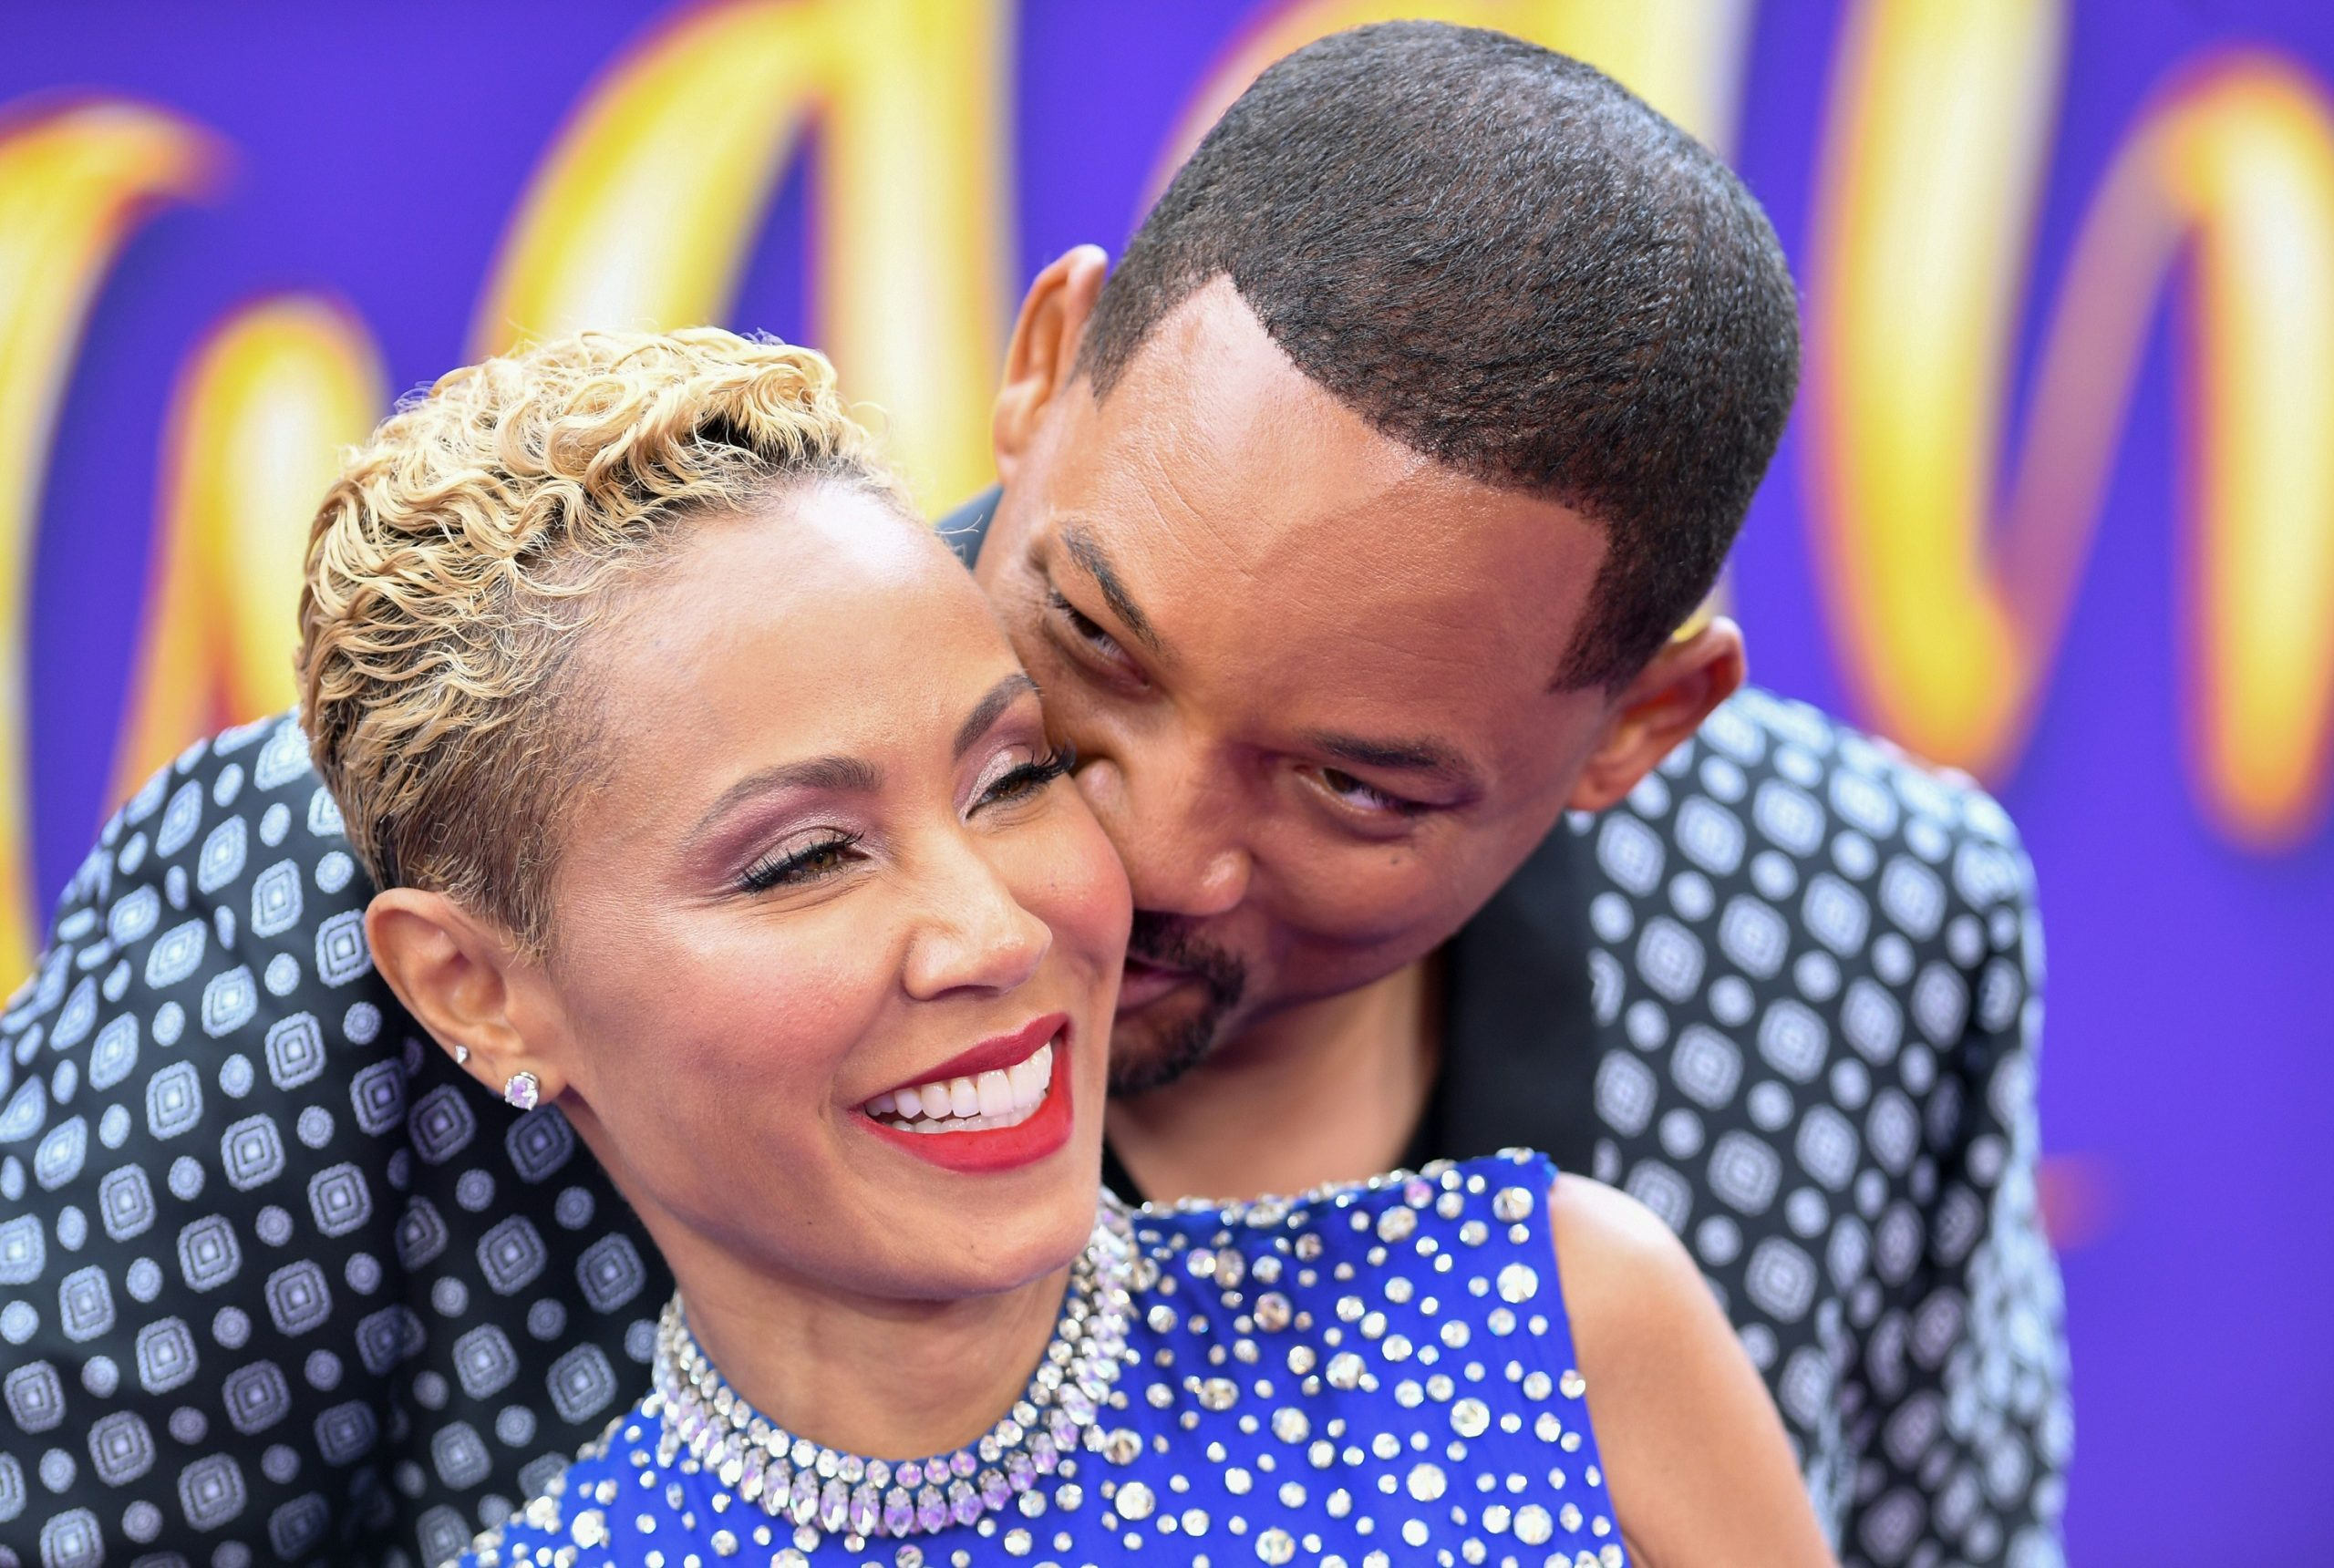 Jada Pinkett Smith Reveals Why She Keeps Her Hair Short I Was Literally Shaking With Fear